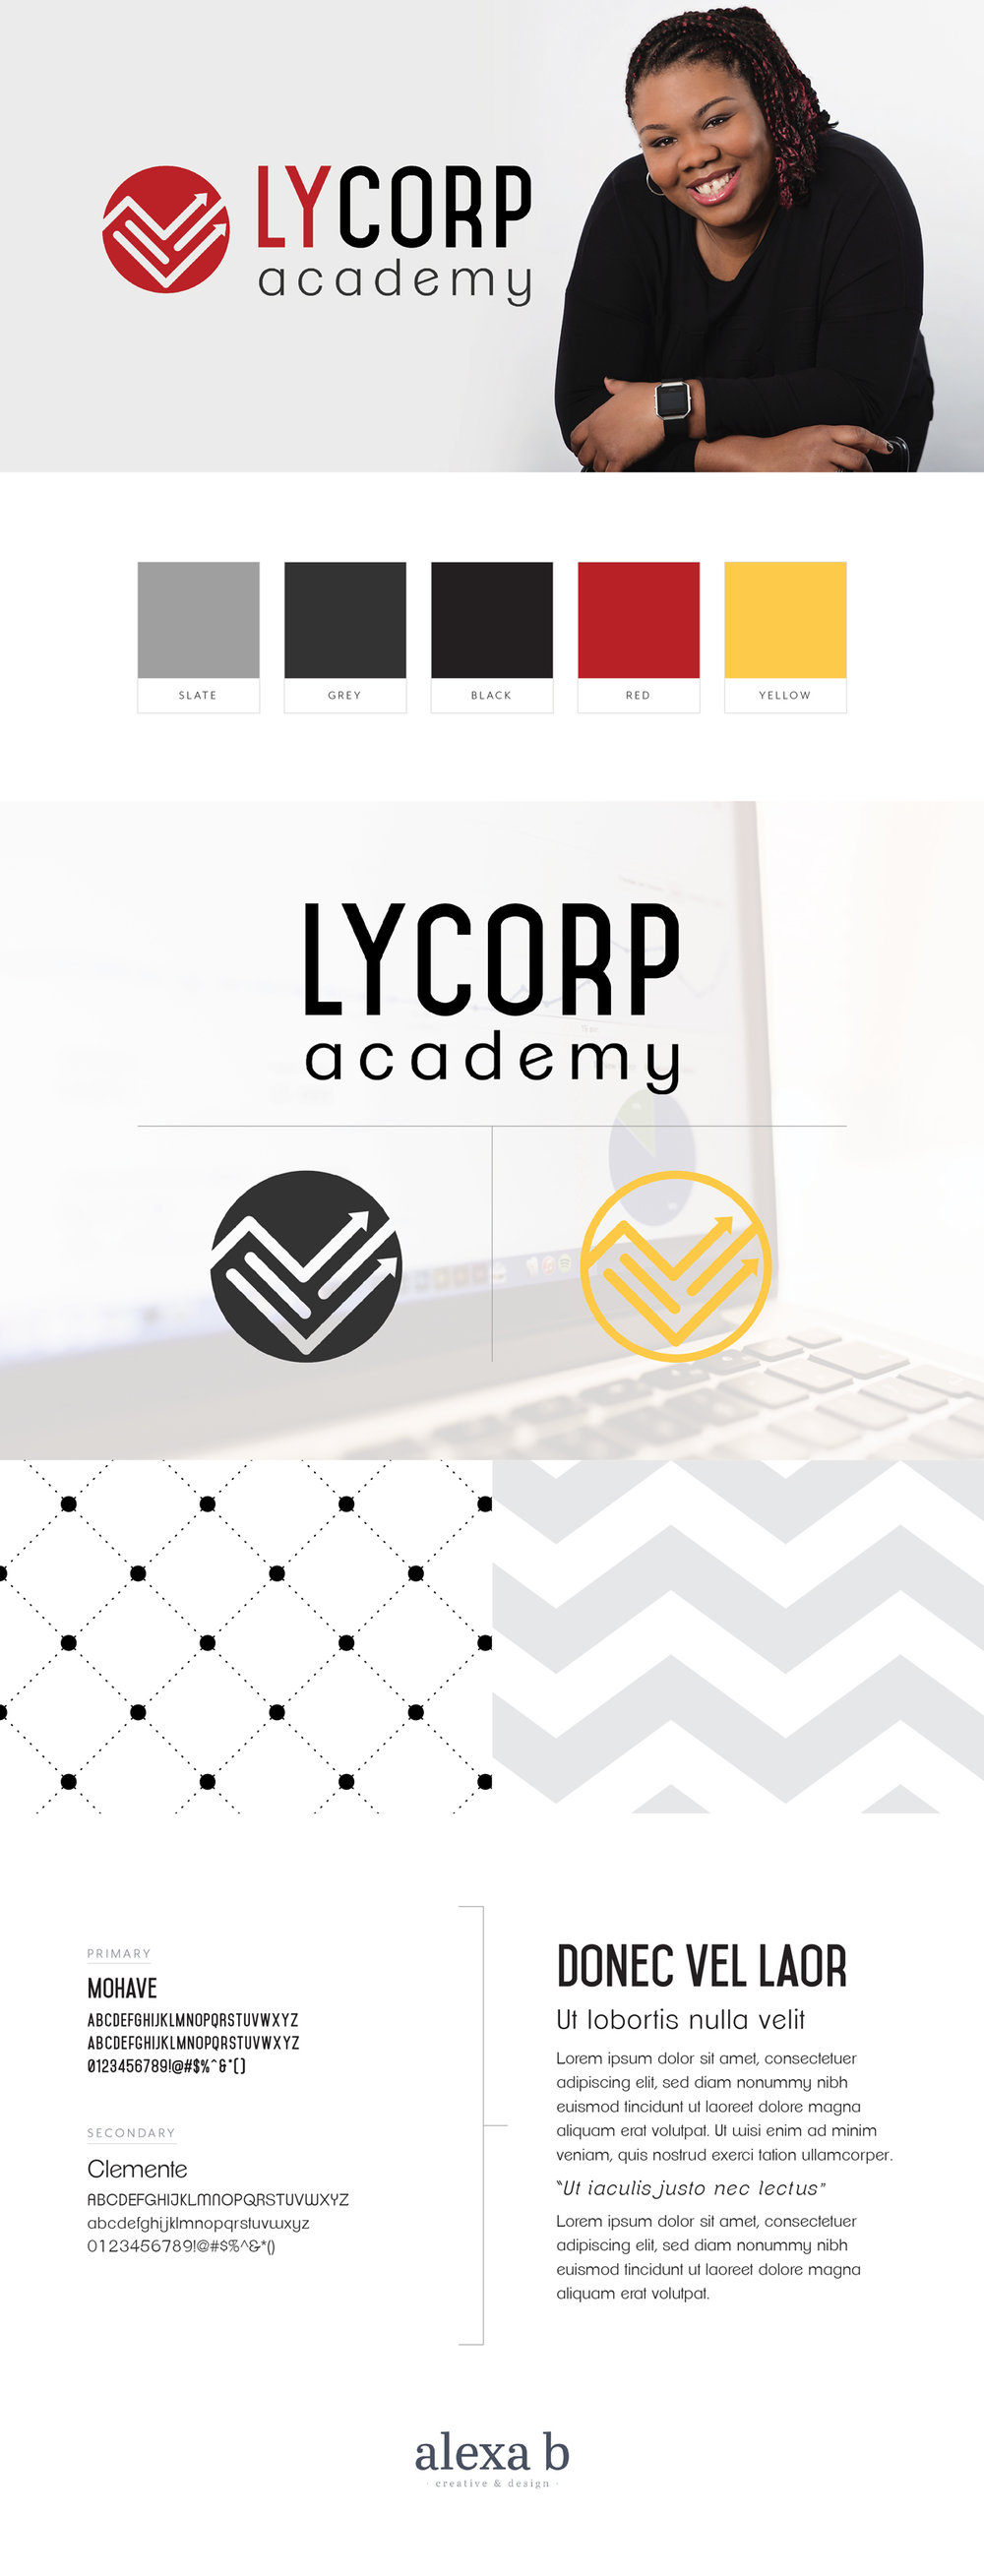 Branding for LyCorp Academy, a business intelligence and analytics consultancy. Designed by Alexa B. Creative & Design in collaboration with Color + Market.